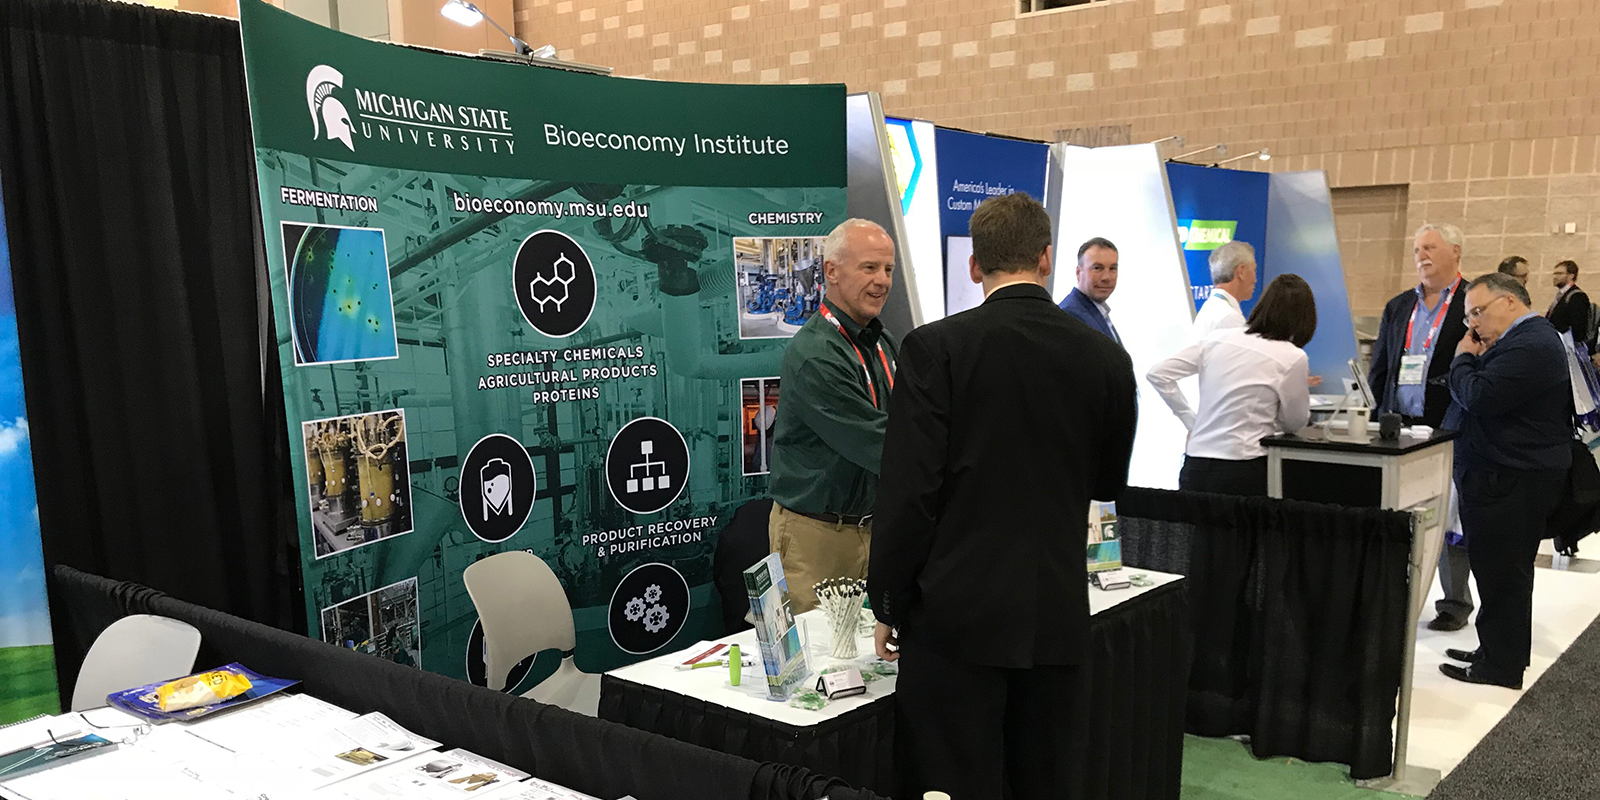 Freckman greets guests at trade show booth